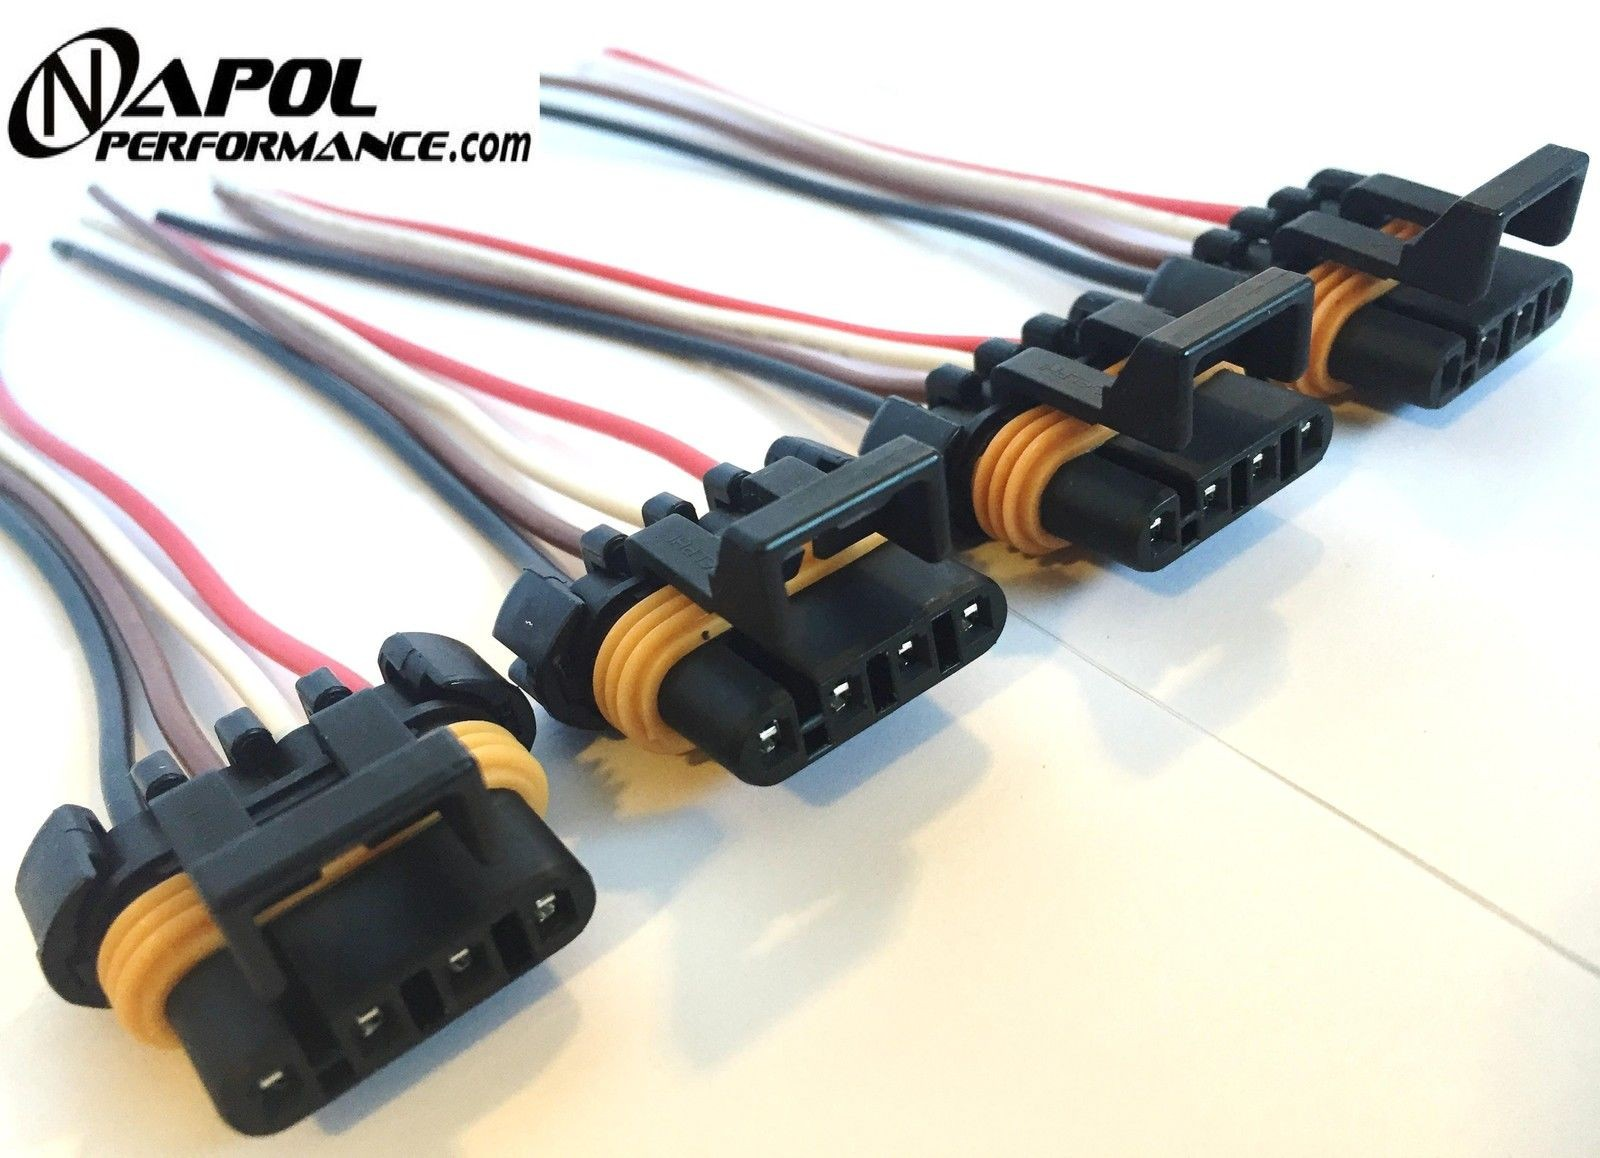 4 x ls1 ls6 ignition coil wiring harness pigtail connector gm camaro rh napolperformance com Chevy Ignition Coil Wiring Diagram GM HEI Coil in Distributor Cap Wiring Diagram